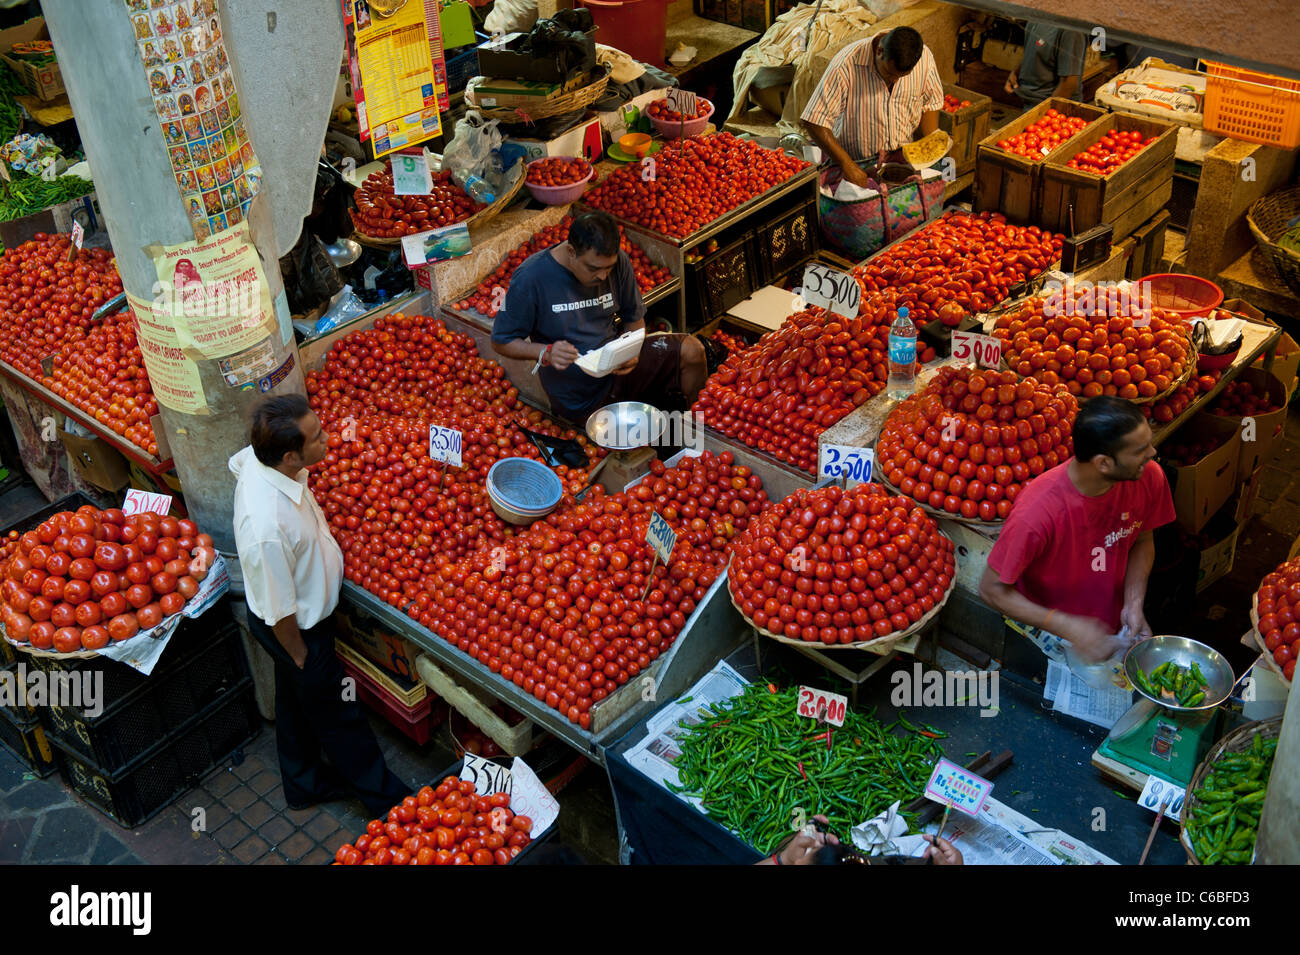 Tomato market stall in central market port louis mauritius stock photo royalty free image - Mauritius market port louis ...